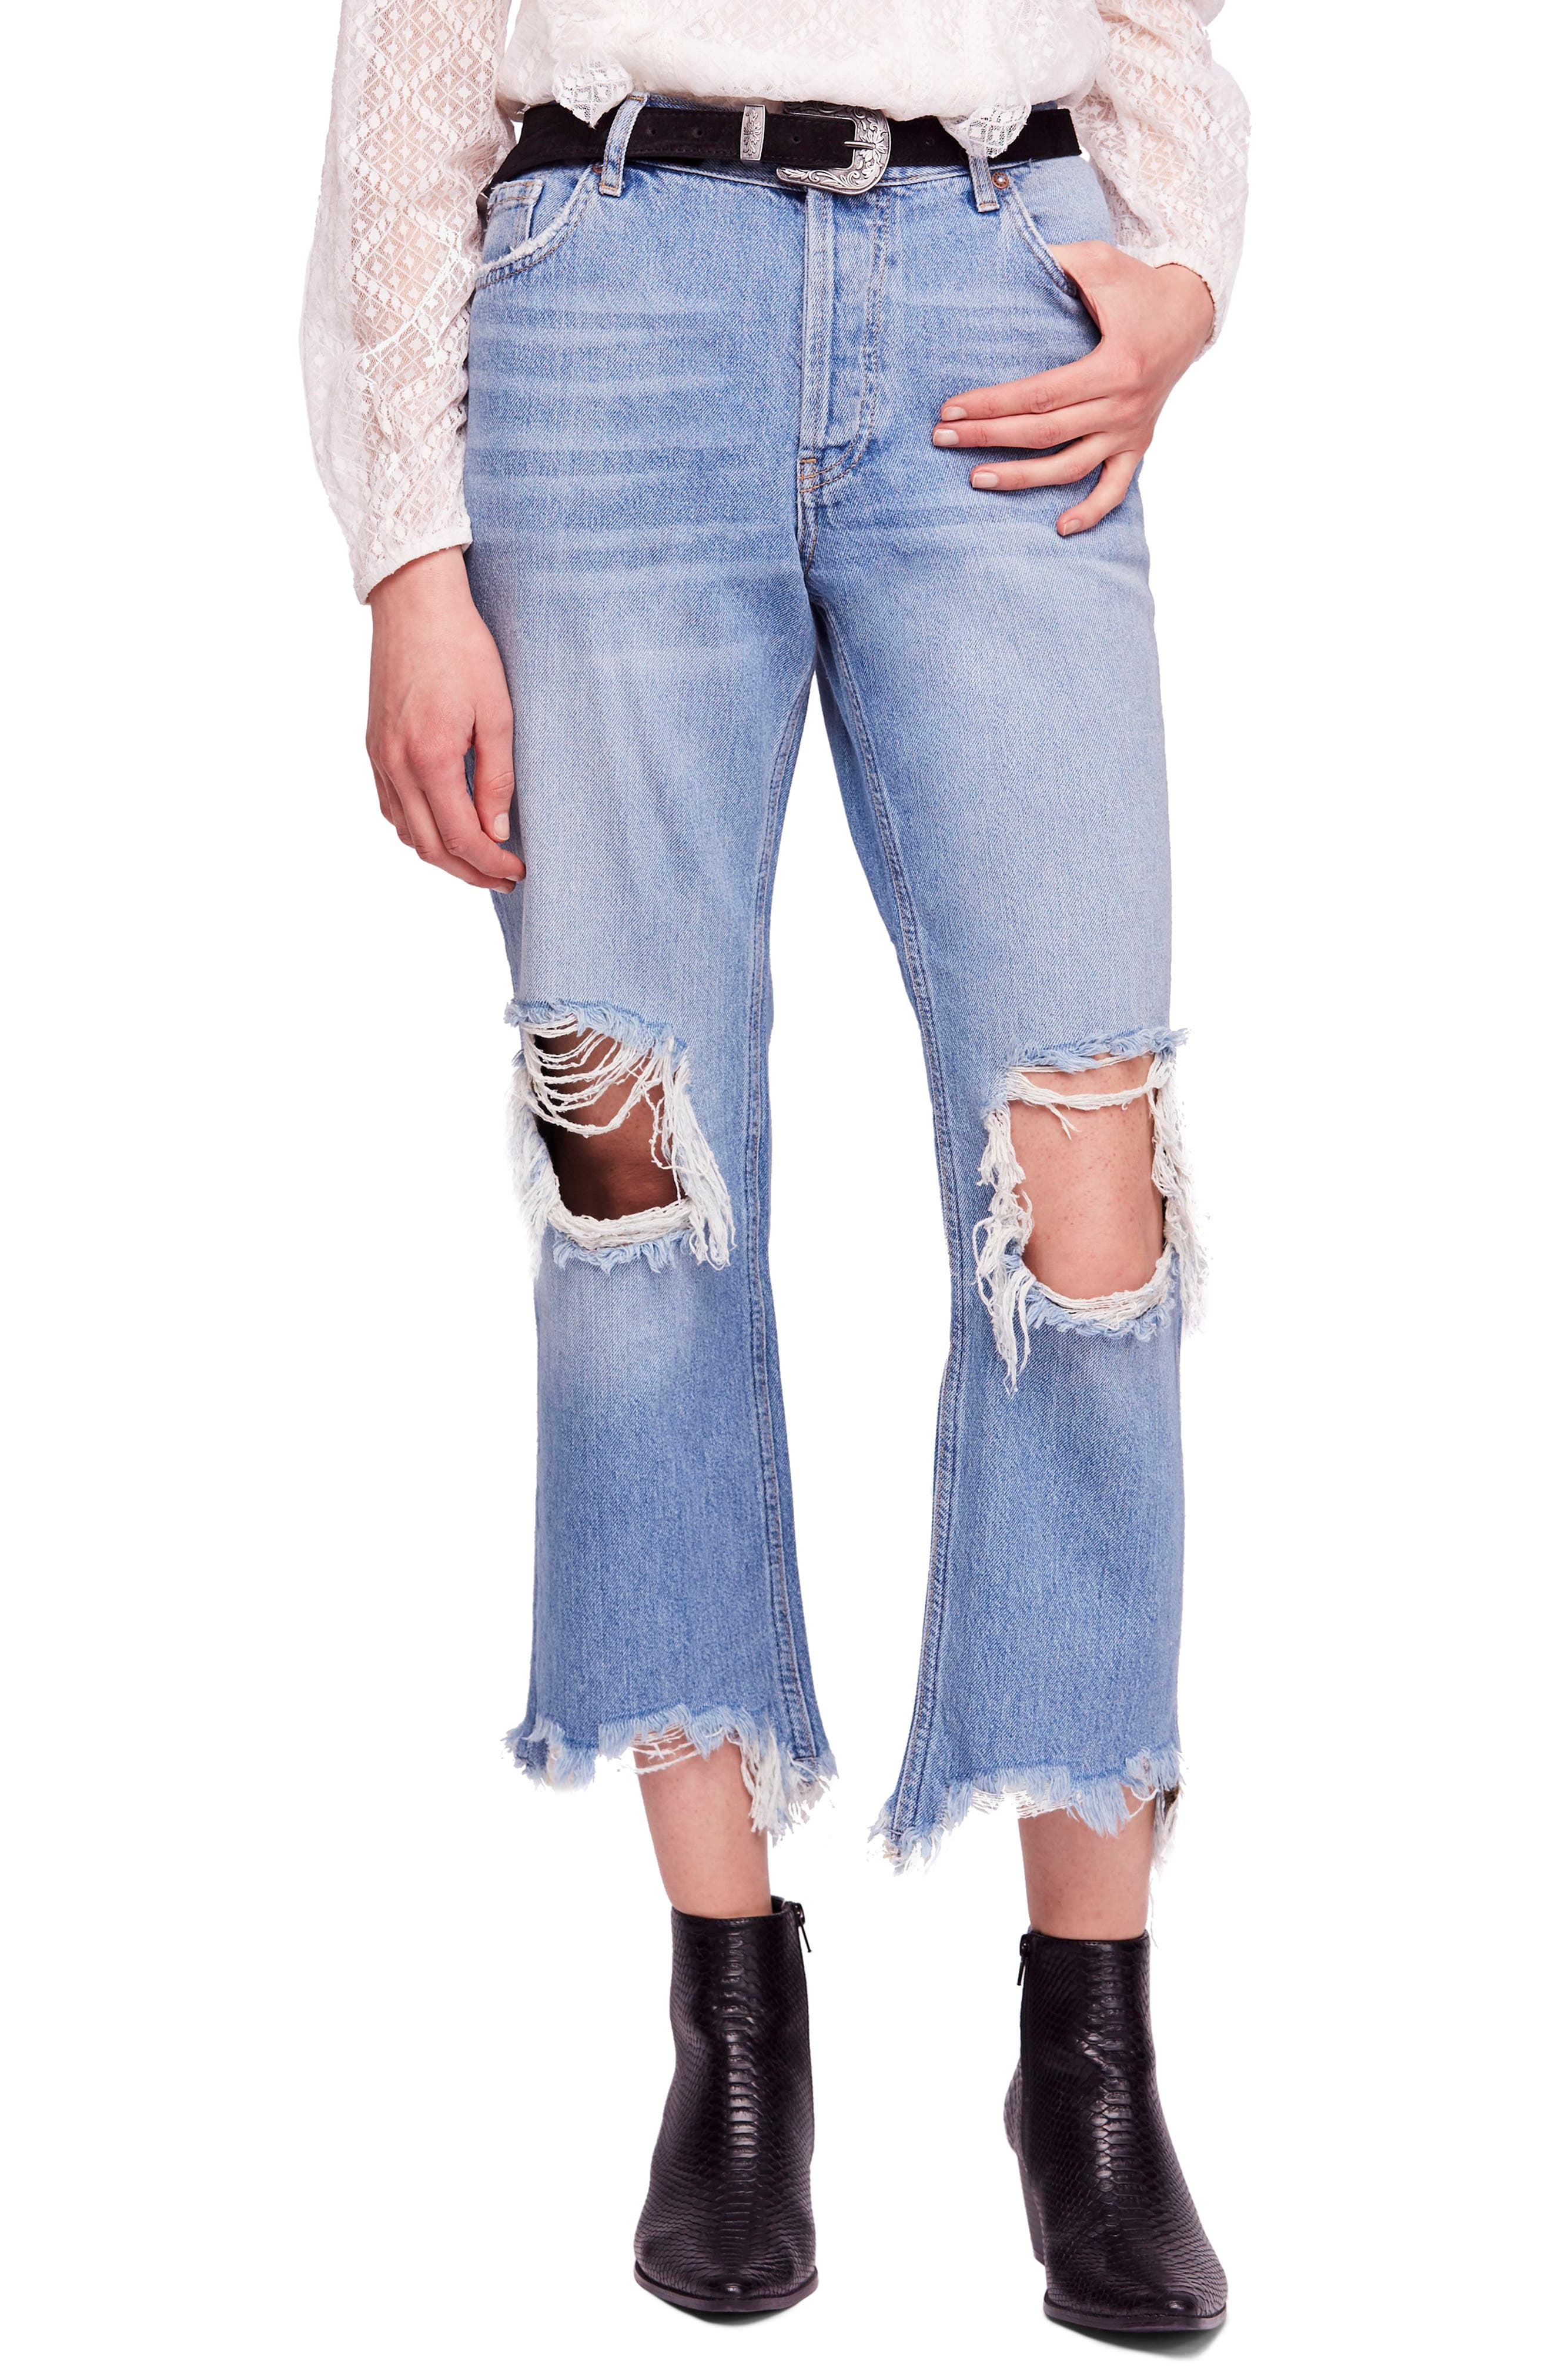 FREE PEOPLE We the Free by Free People Maggie Ripped Crop Straight Leg Jeans, Main, color, 456